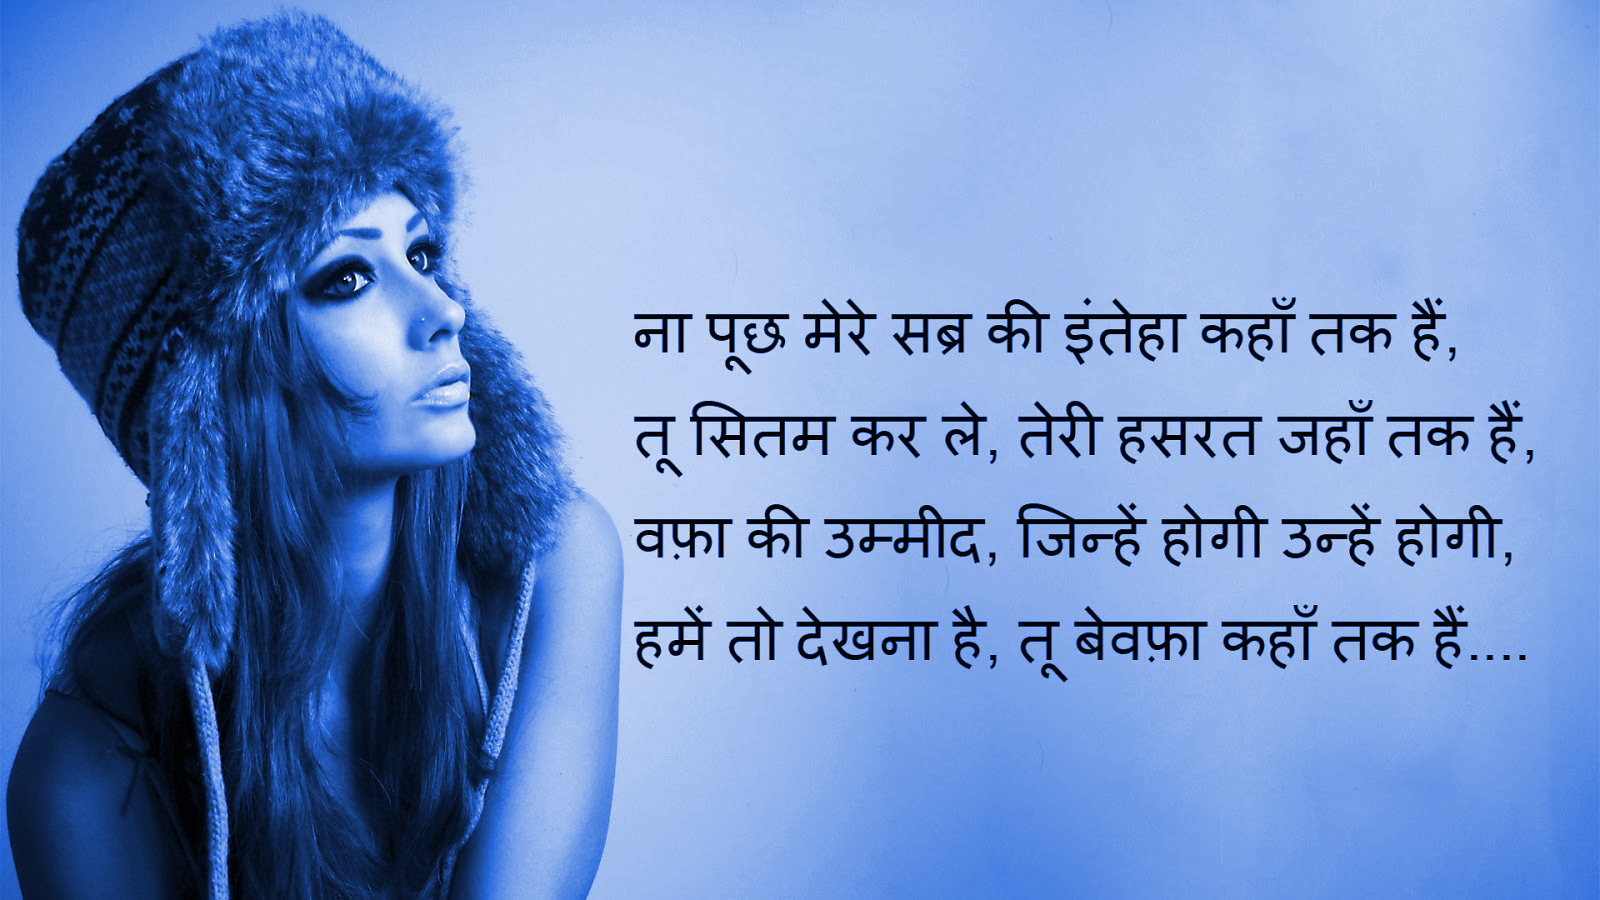 Bewafa Shayari Images  Photo Wallpaper Pics Download